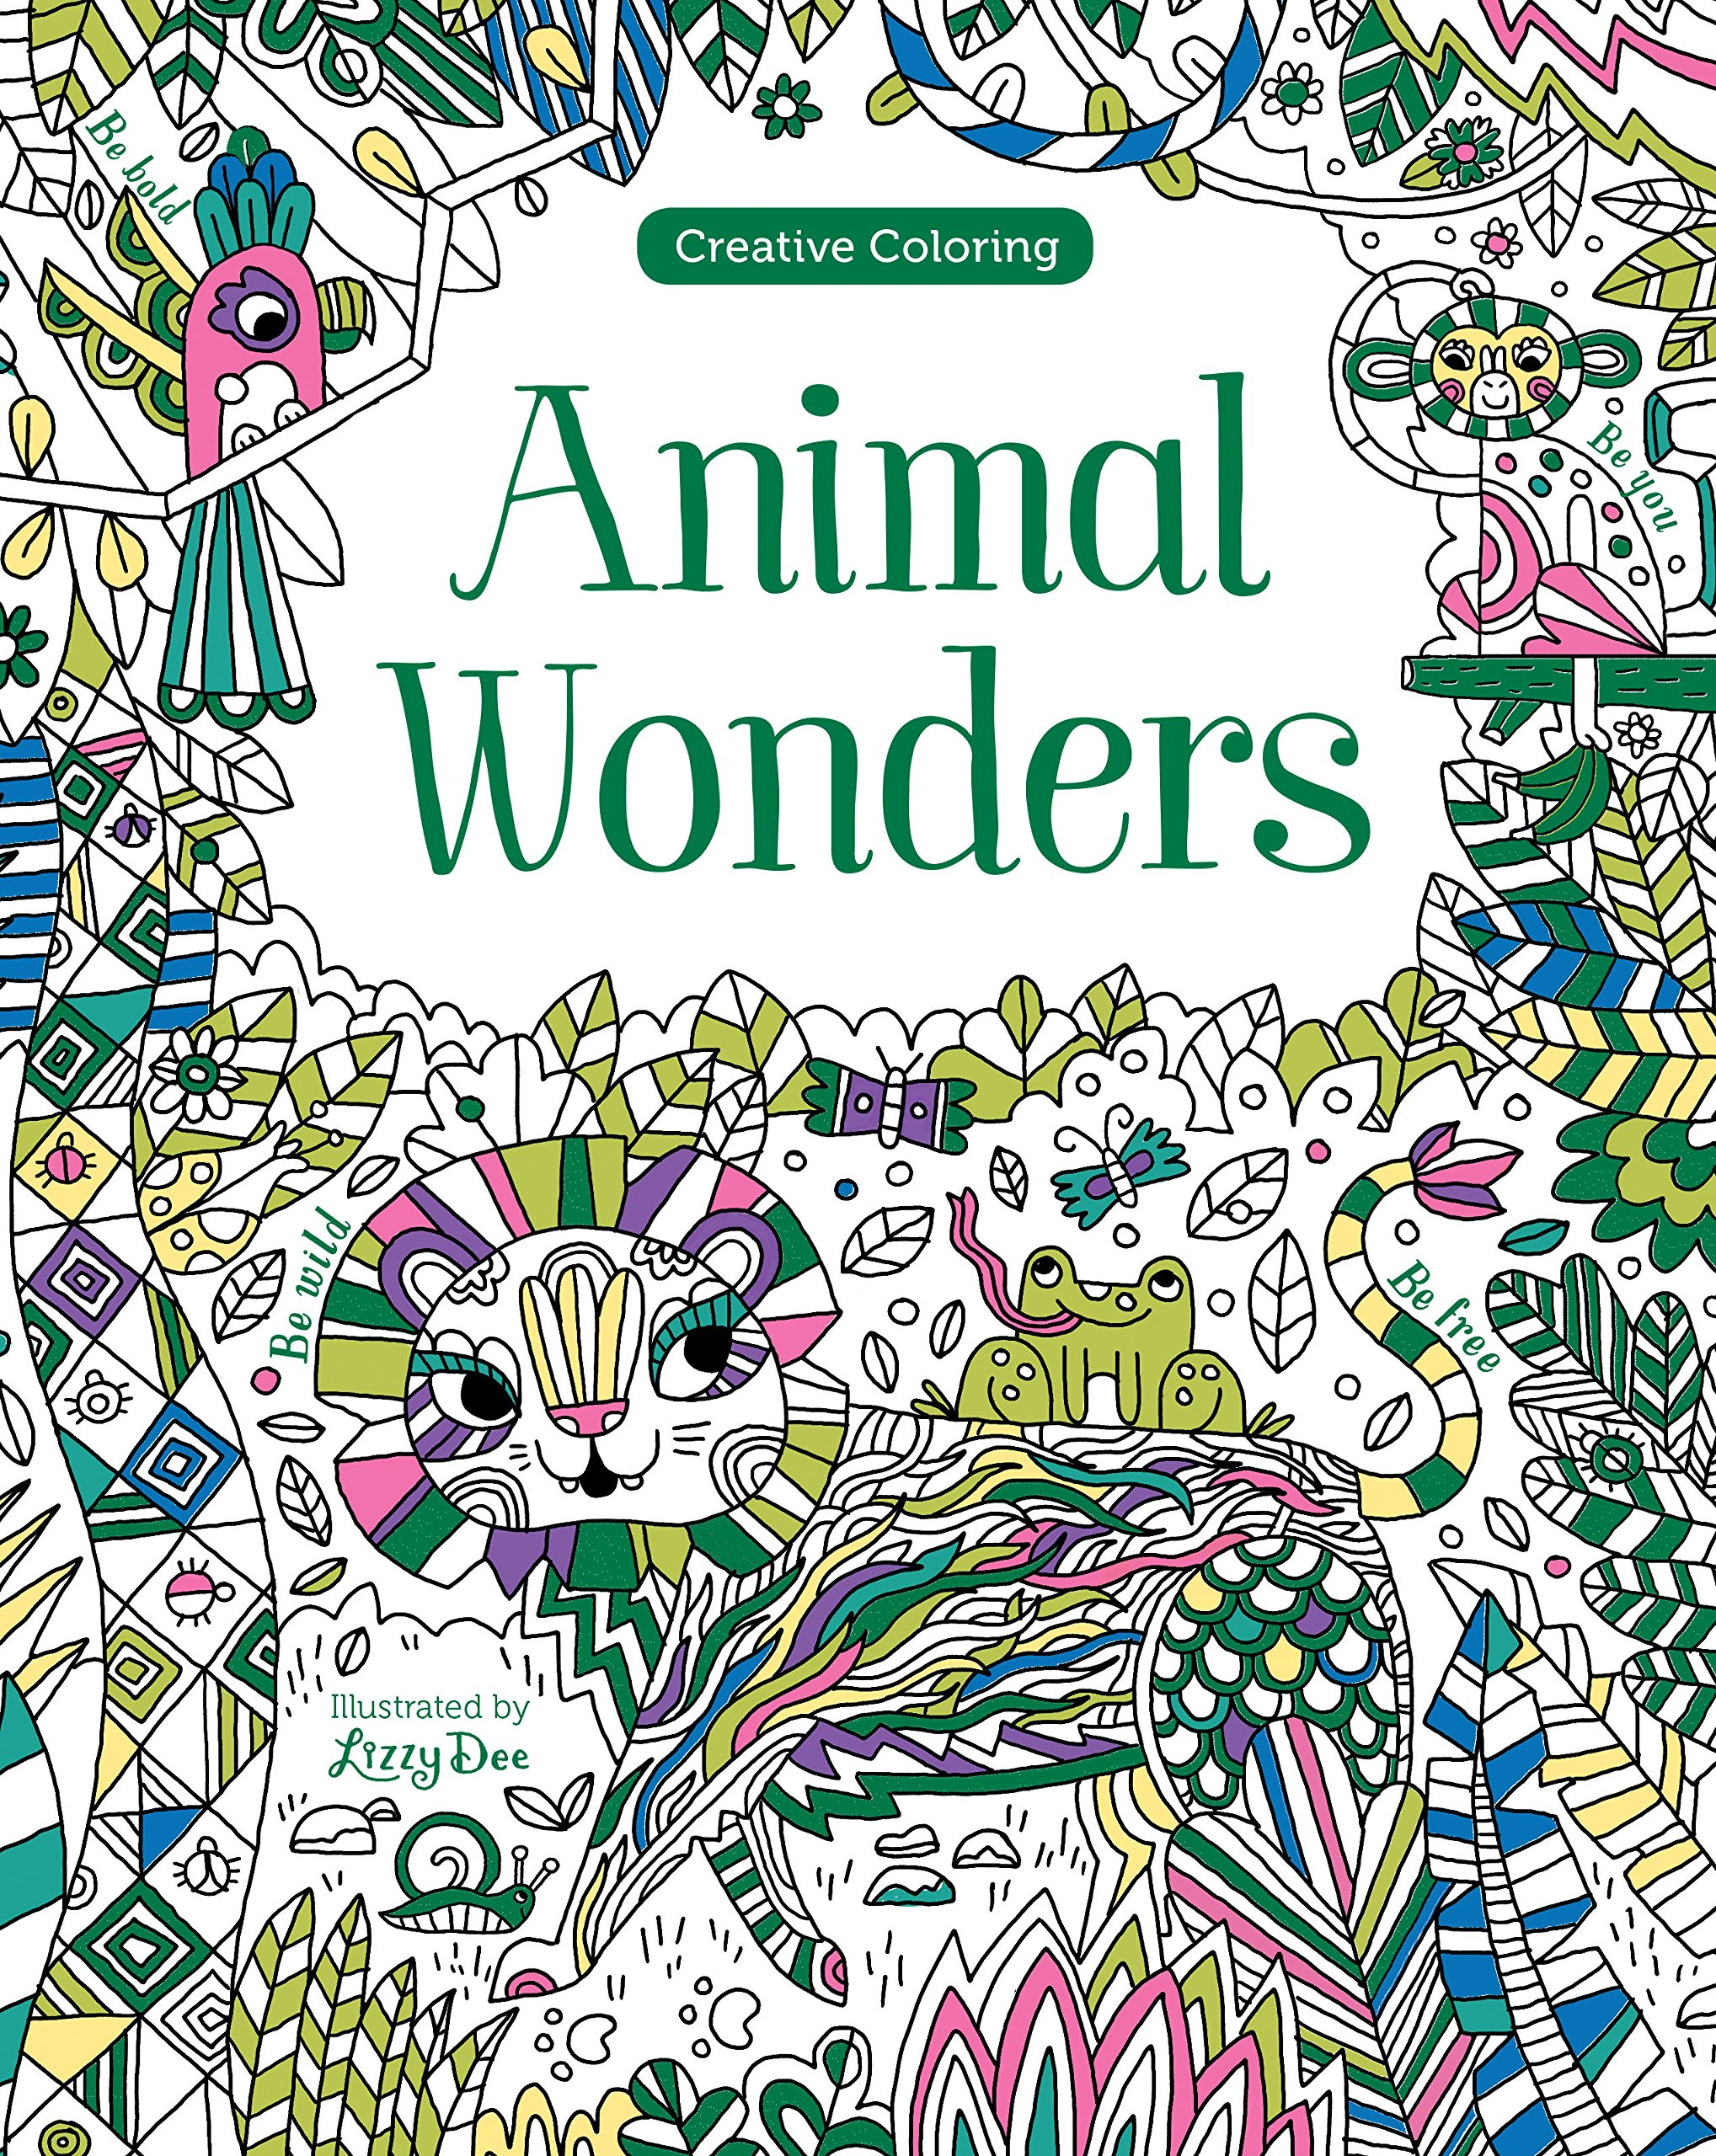 Animal Wonders Creative Coloring Parragon Books Ltd